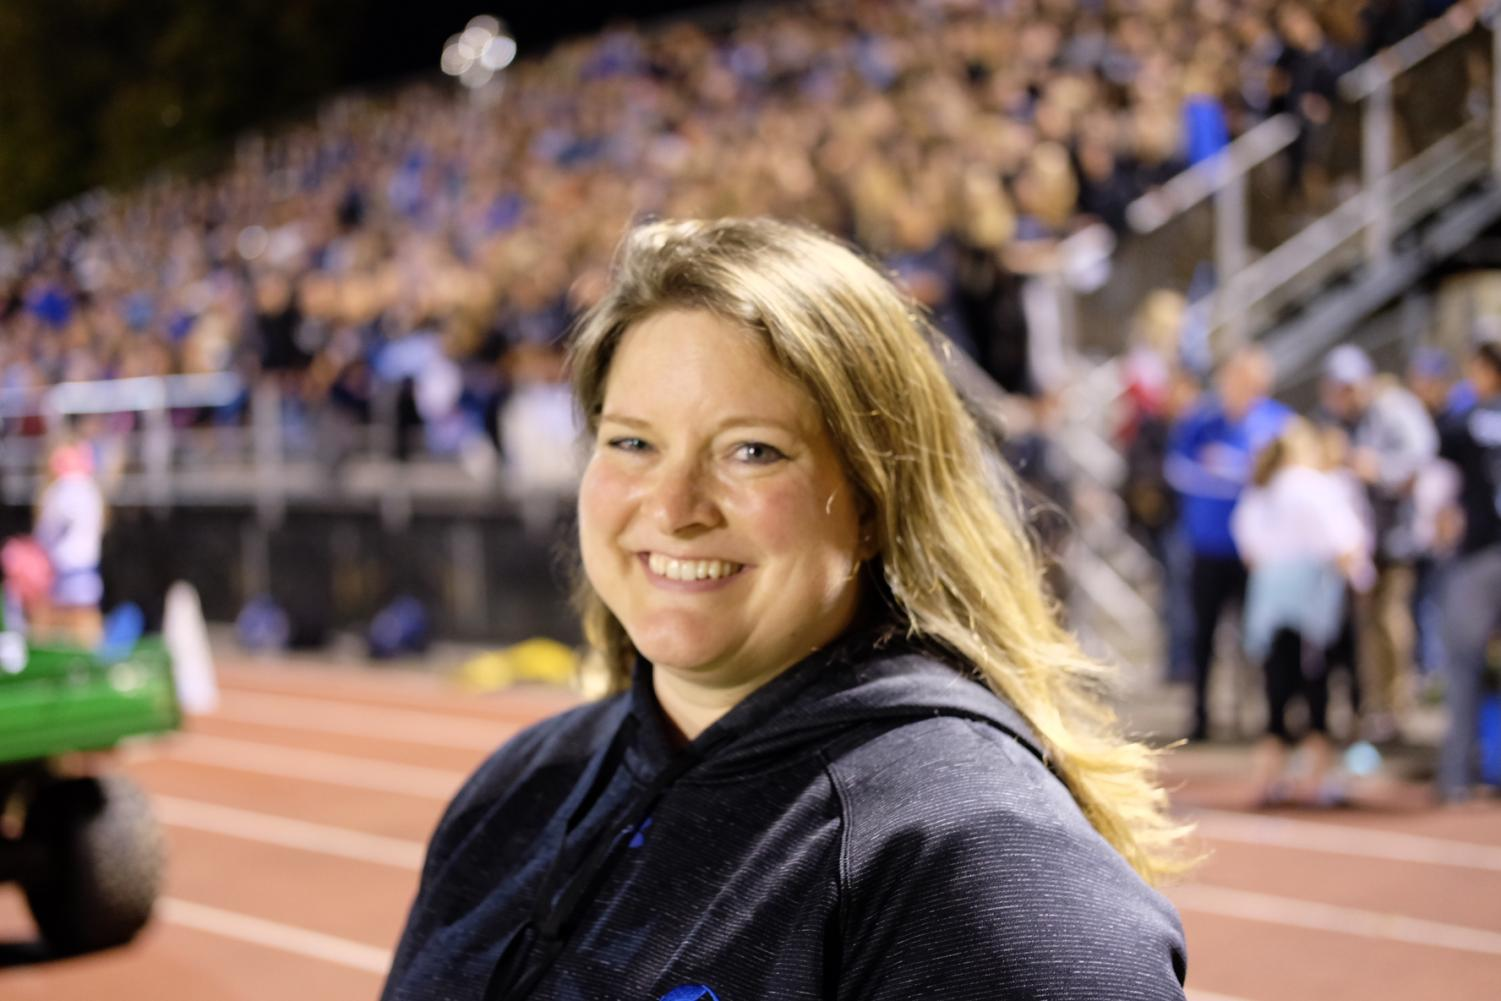 Ms. Brinson has been getting to know the community at Friday night football games.